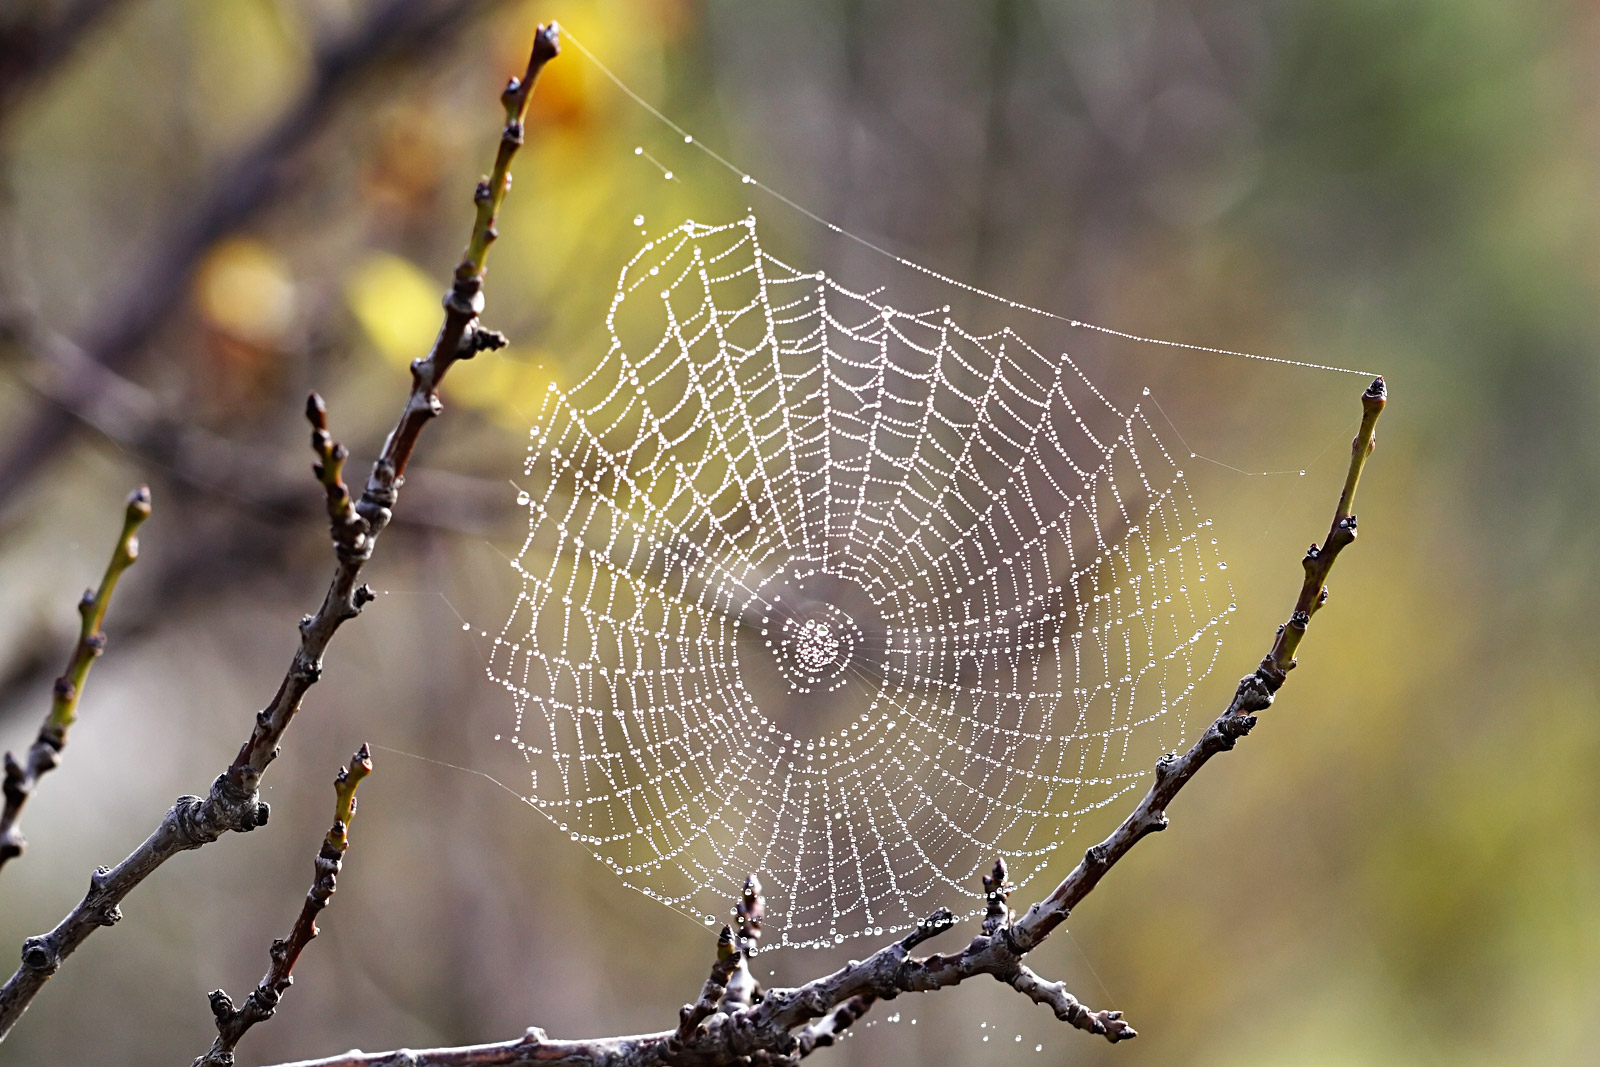 Spider Facts And Information For Children